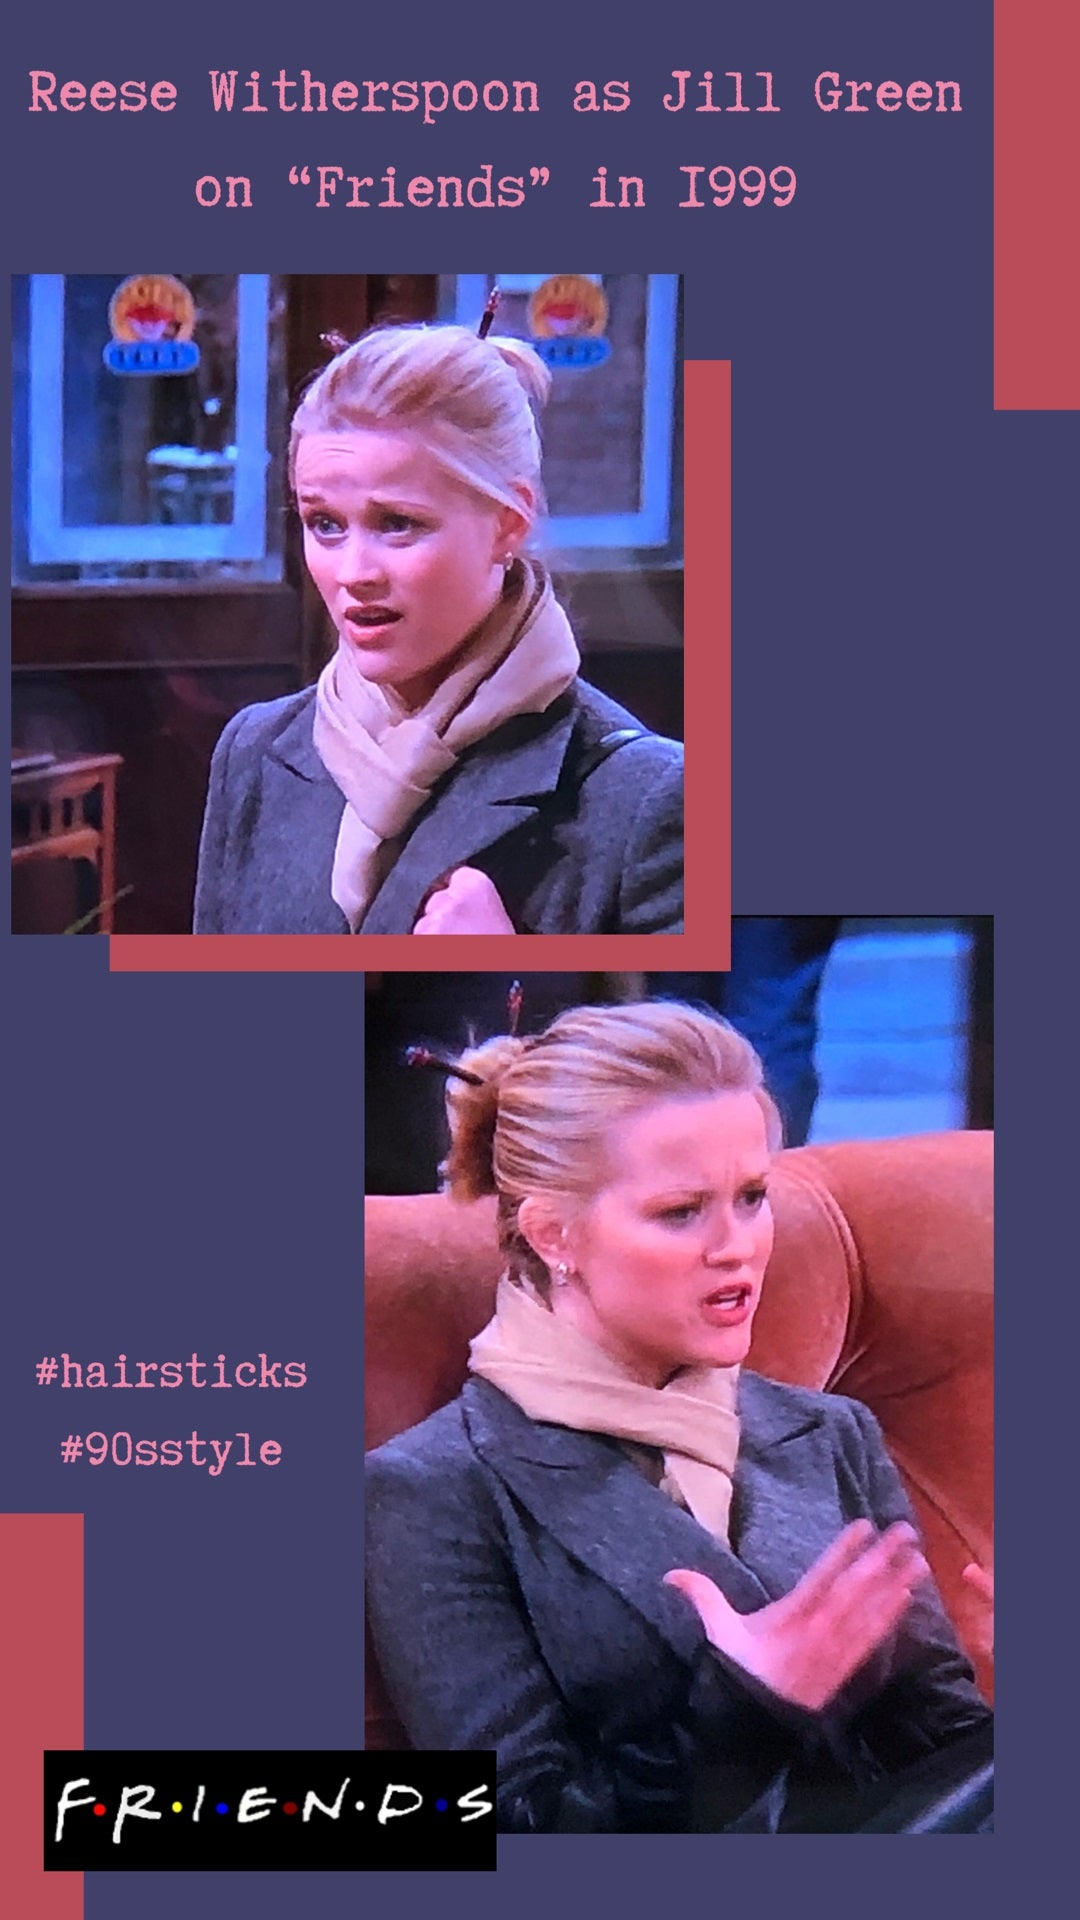 Reese Witherspoon, as Jill Green on Friends TV, wearing Hair Sticks